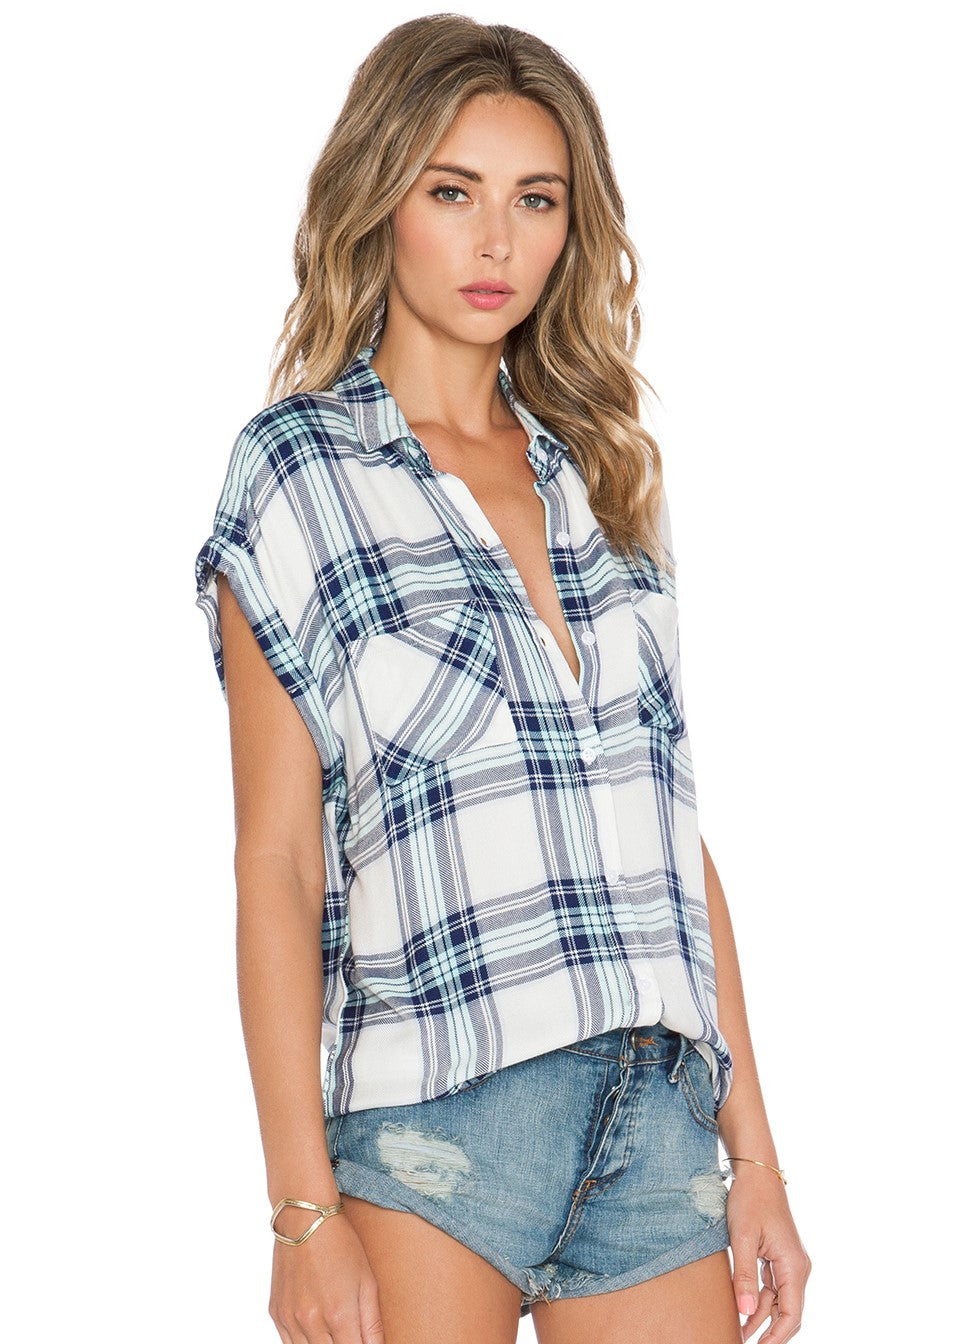 Rails Flannel Britt Button Down Top - White and Mint